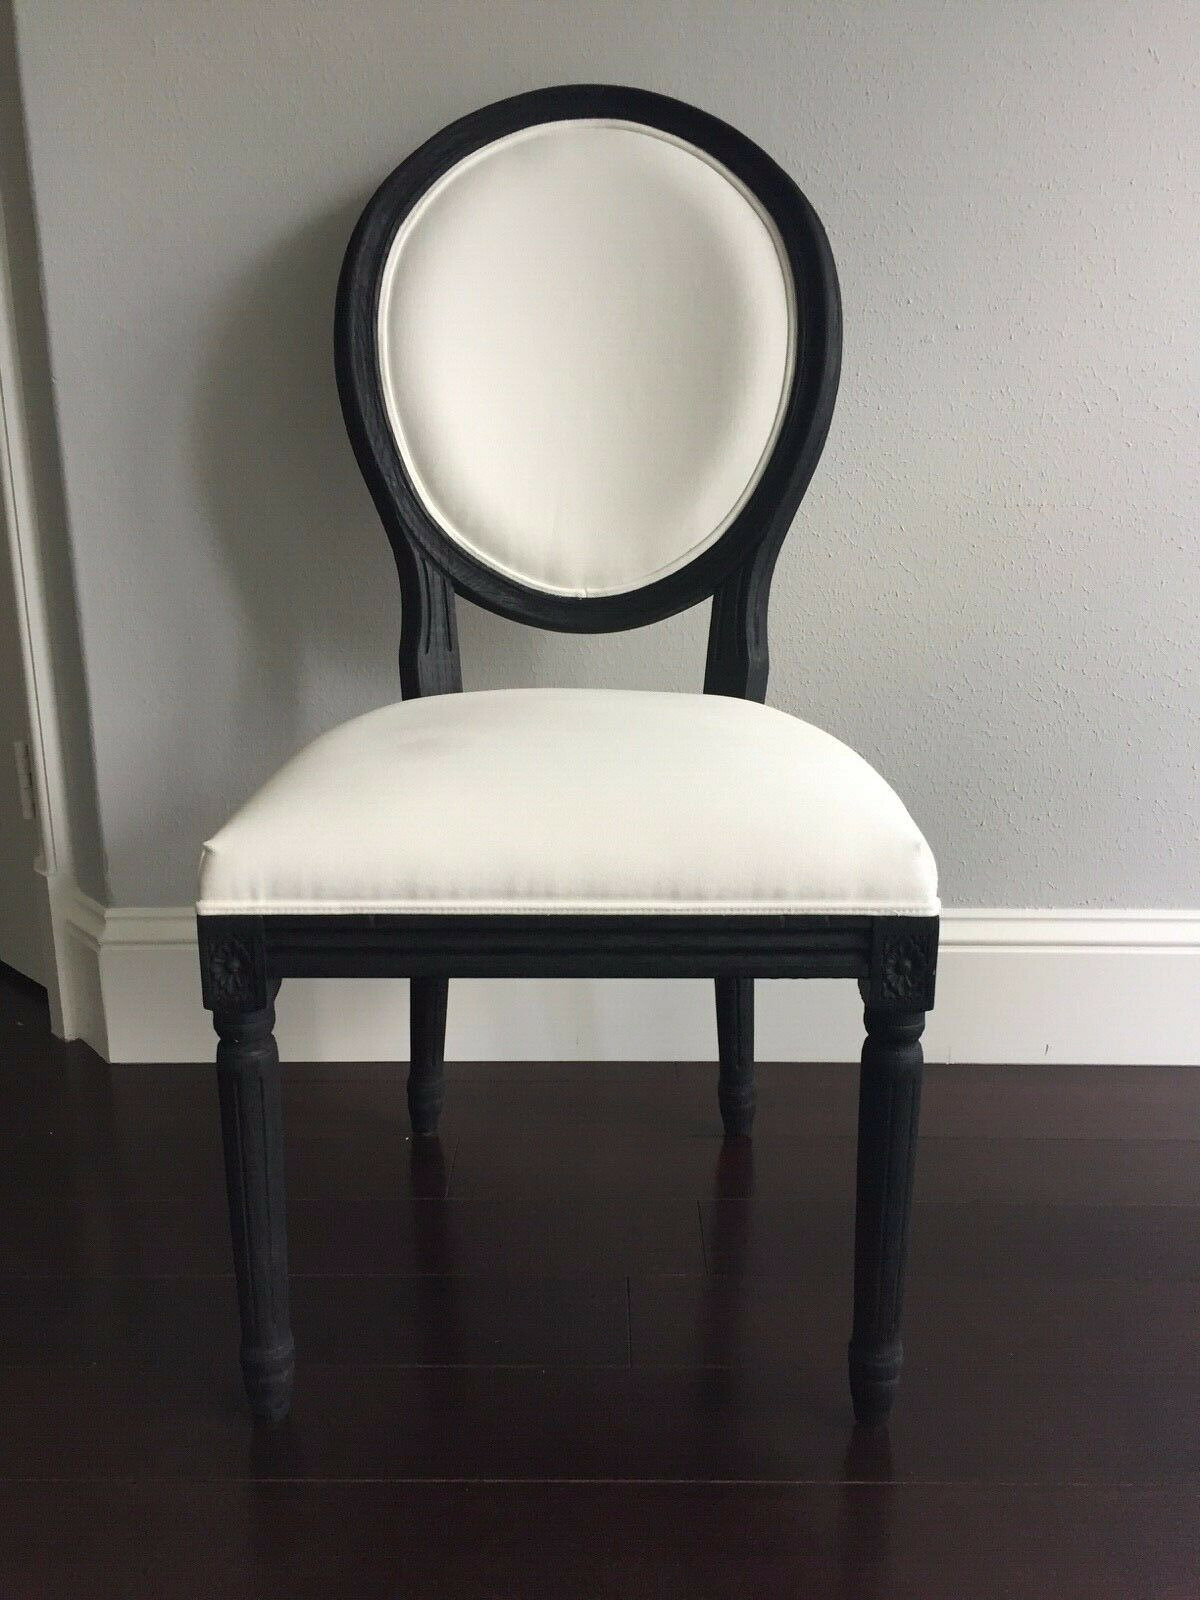 Reproduction Hardware for Antique Furniture Unique Restoration Hardware Vintage French Round Dining Chairs